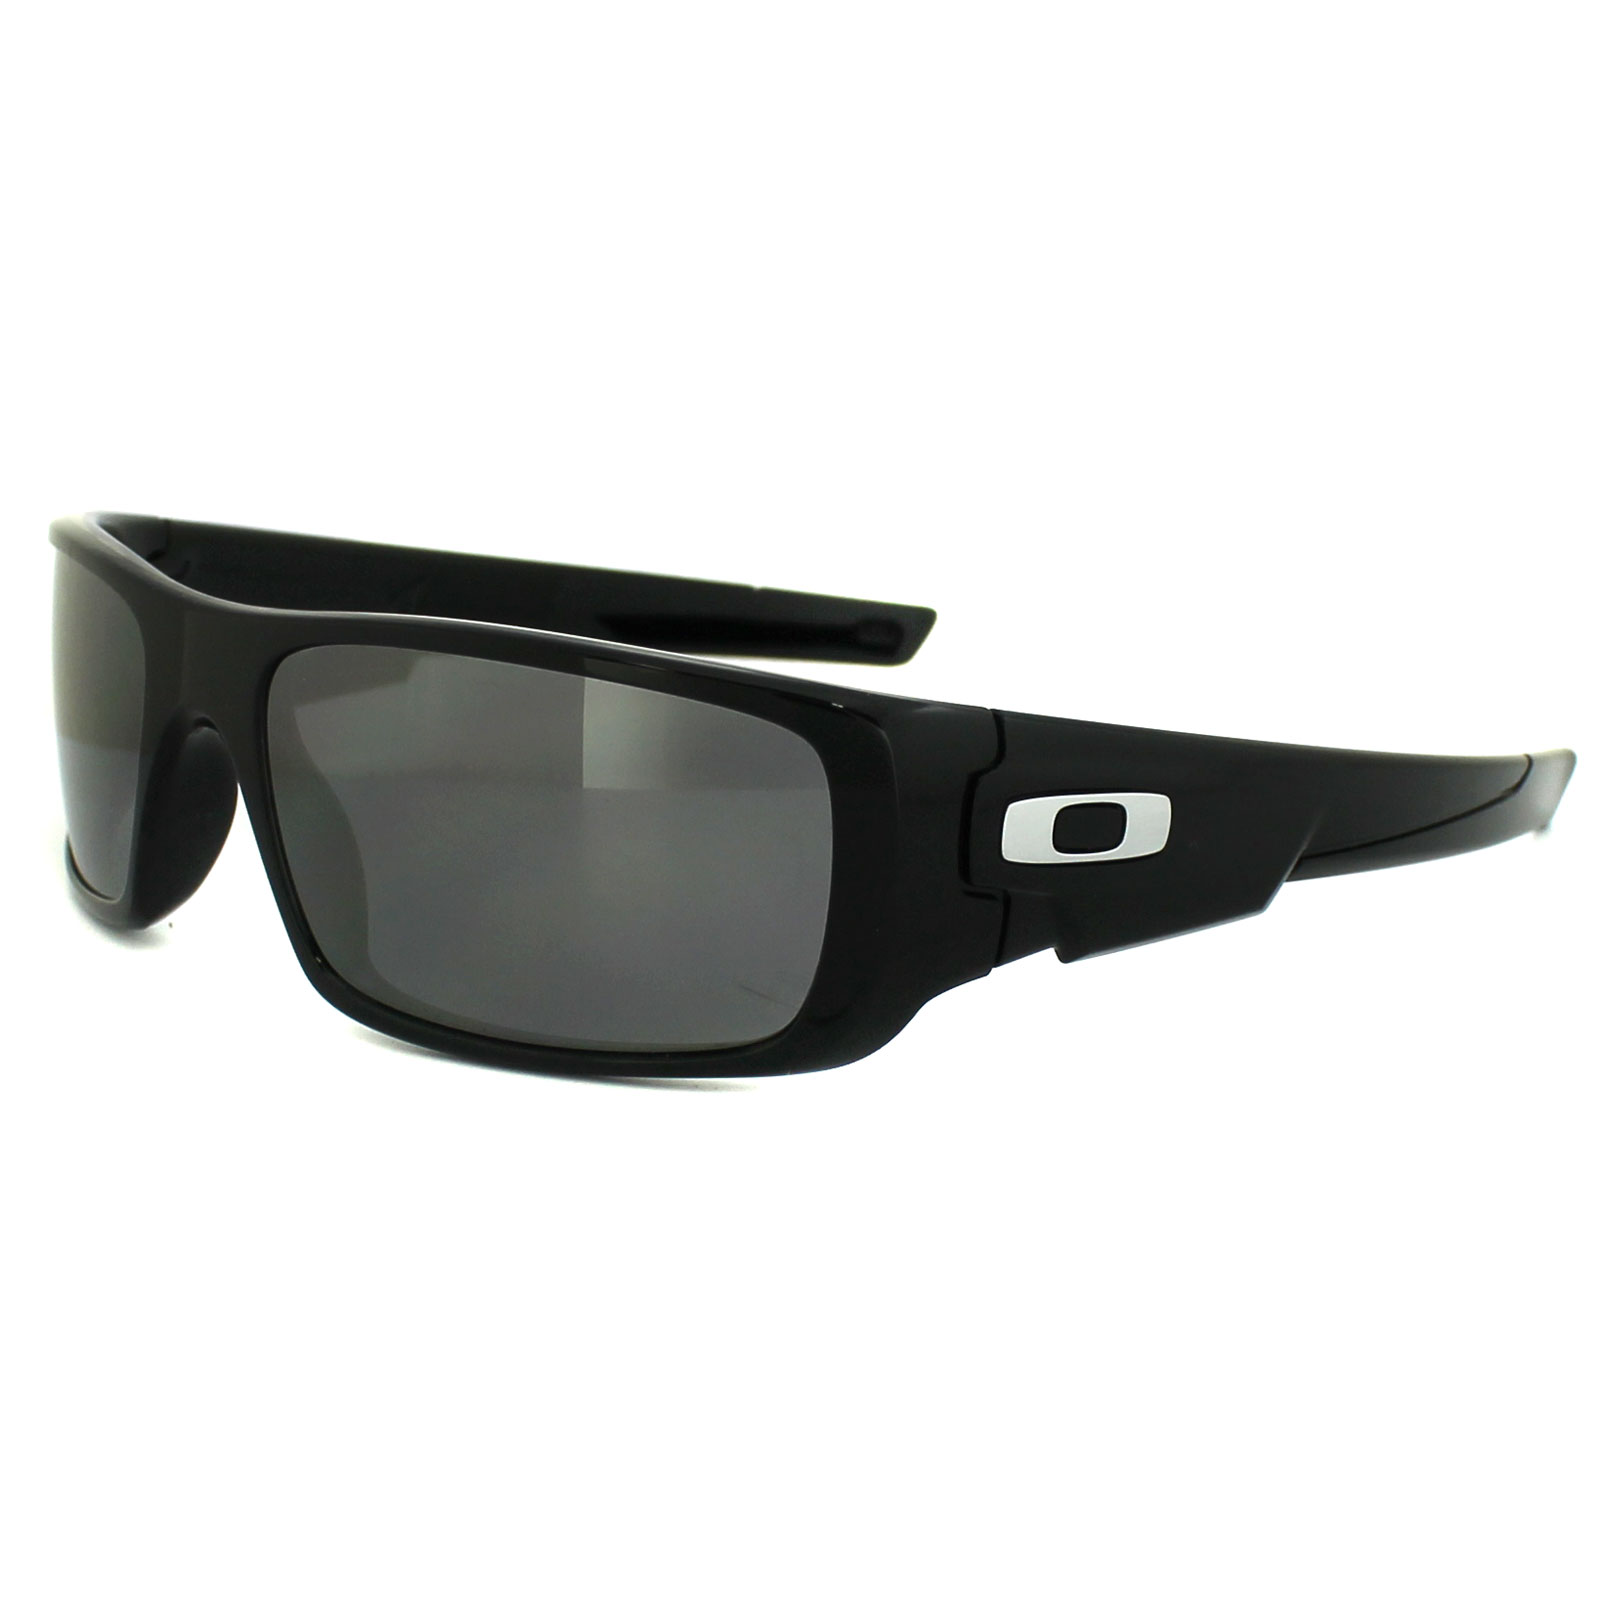 5d2aba6d31 discount code for cheap oakley crankshaft on face 2490f e0a5e